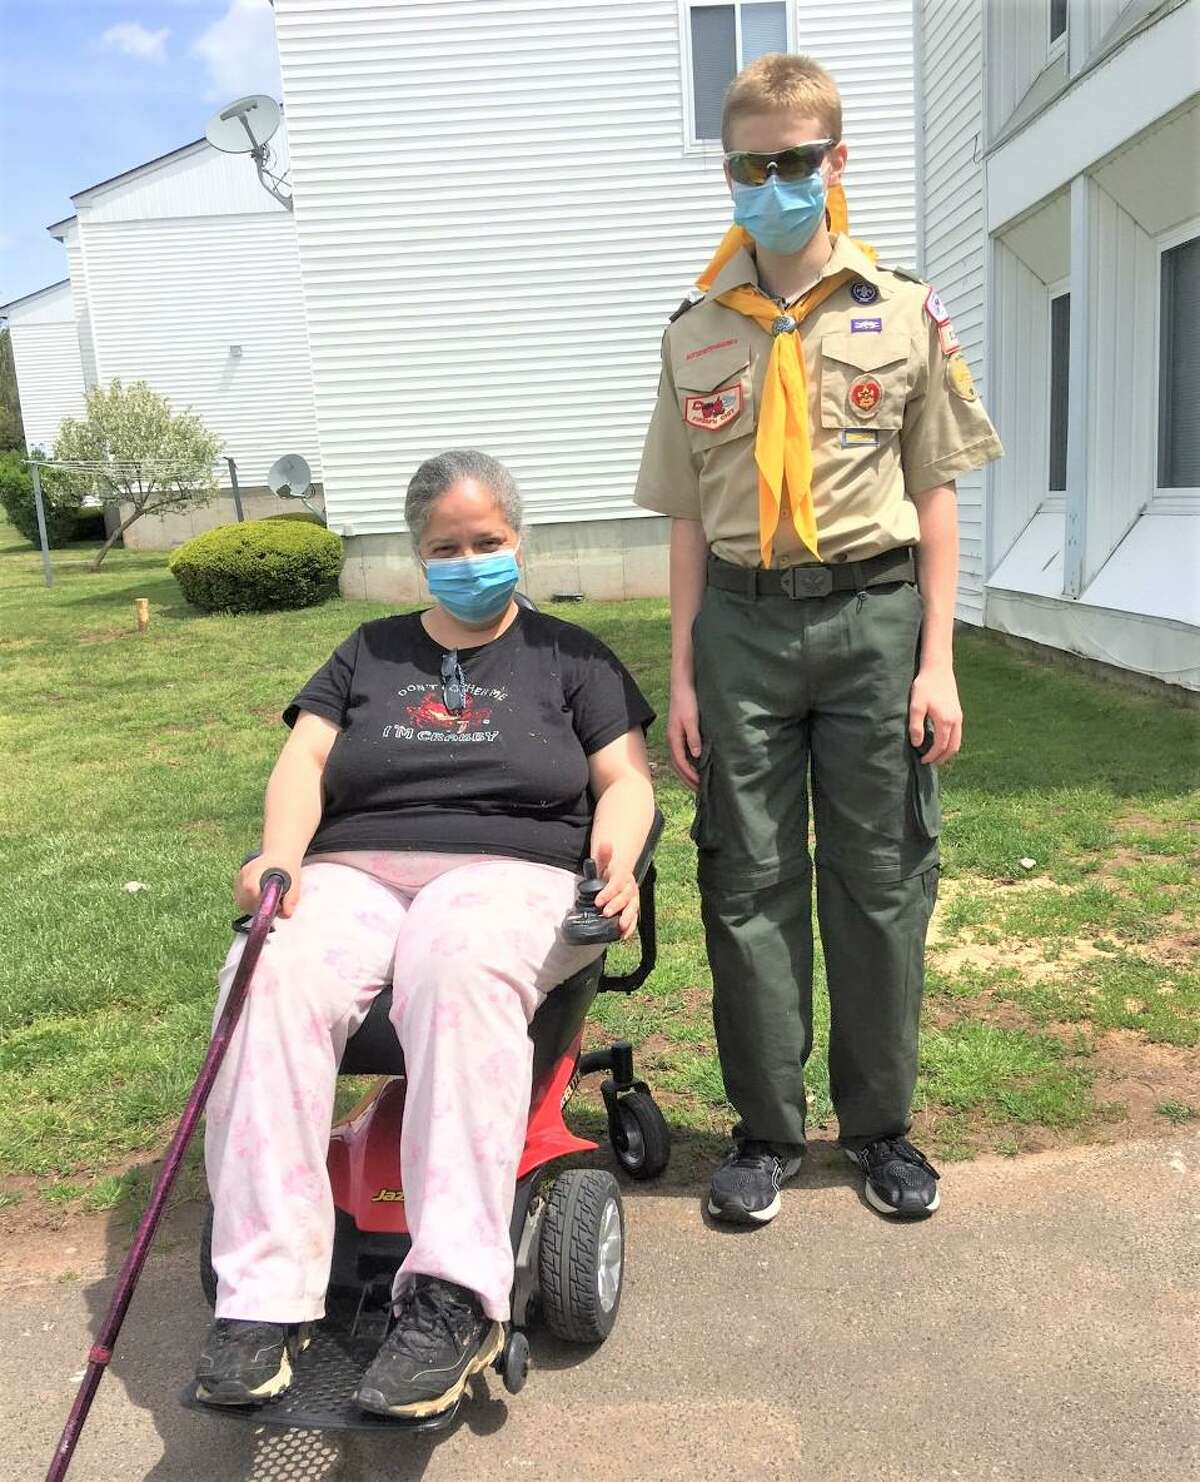 Middletown Boy Scout Michael Kline, 15, left, and Adela Santiago, right, are shown with the motorized wheelchair he purchased for her and delivered on Mother's Day.